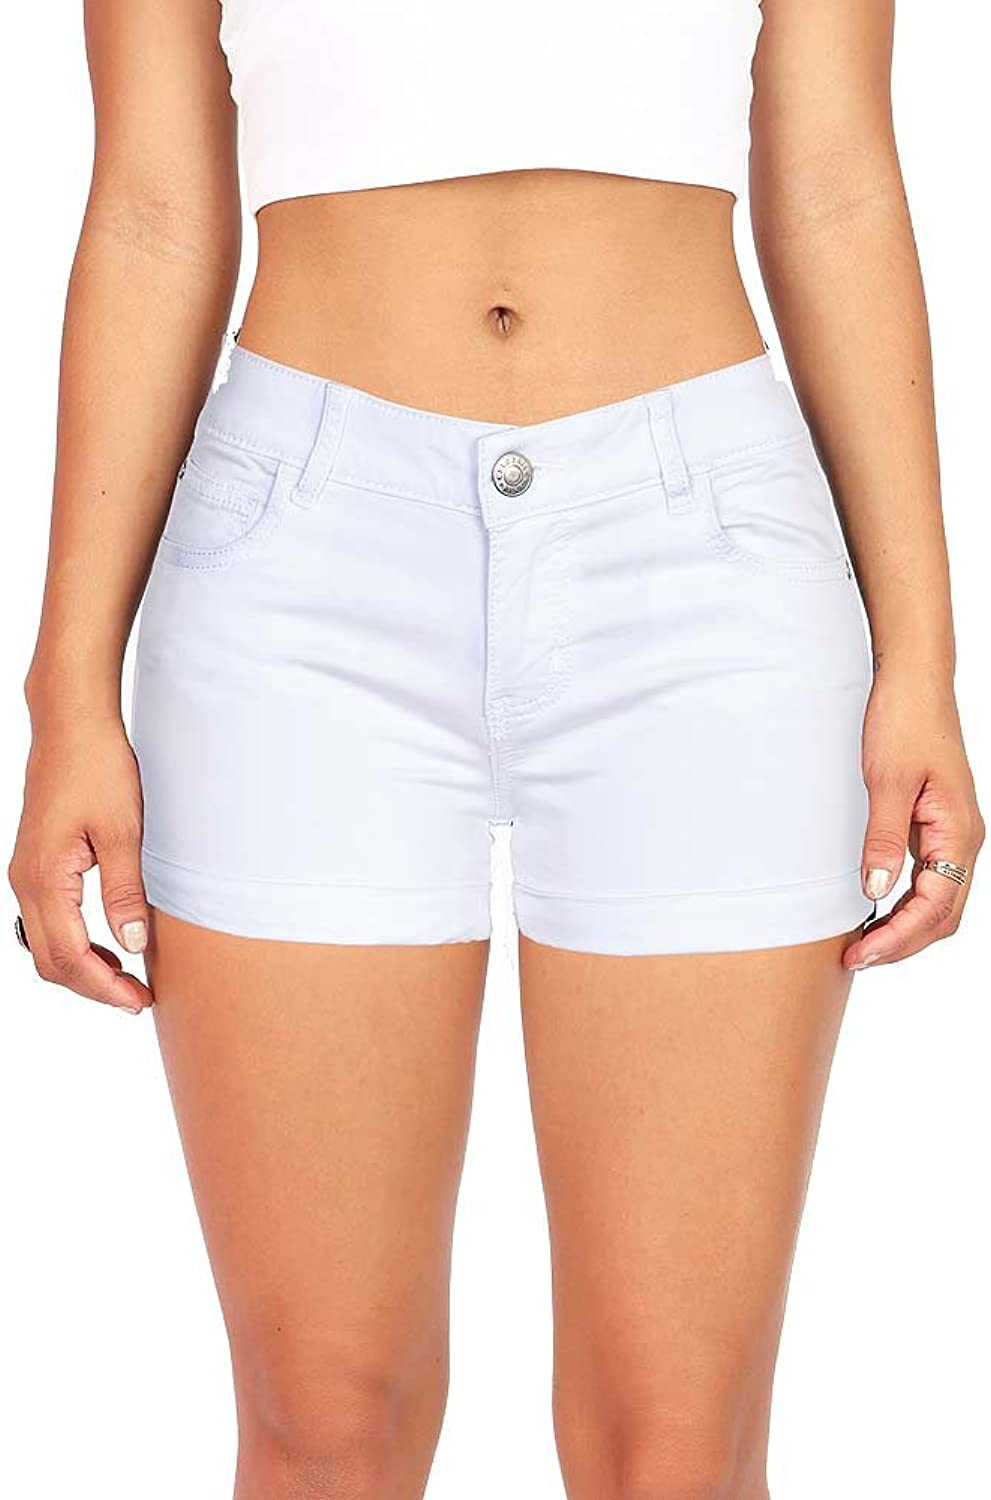 CelebrityPink Women's Juniors Low Rise Shorts with Rolled up Hem